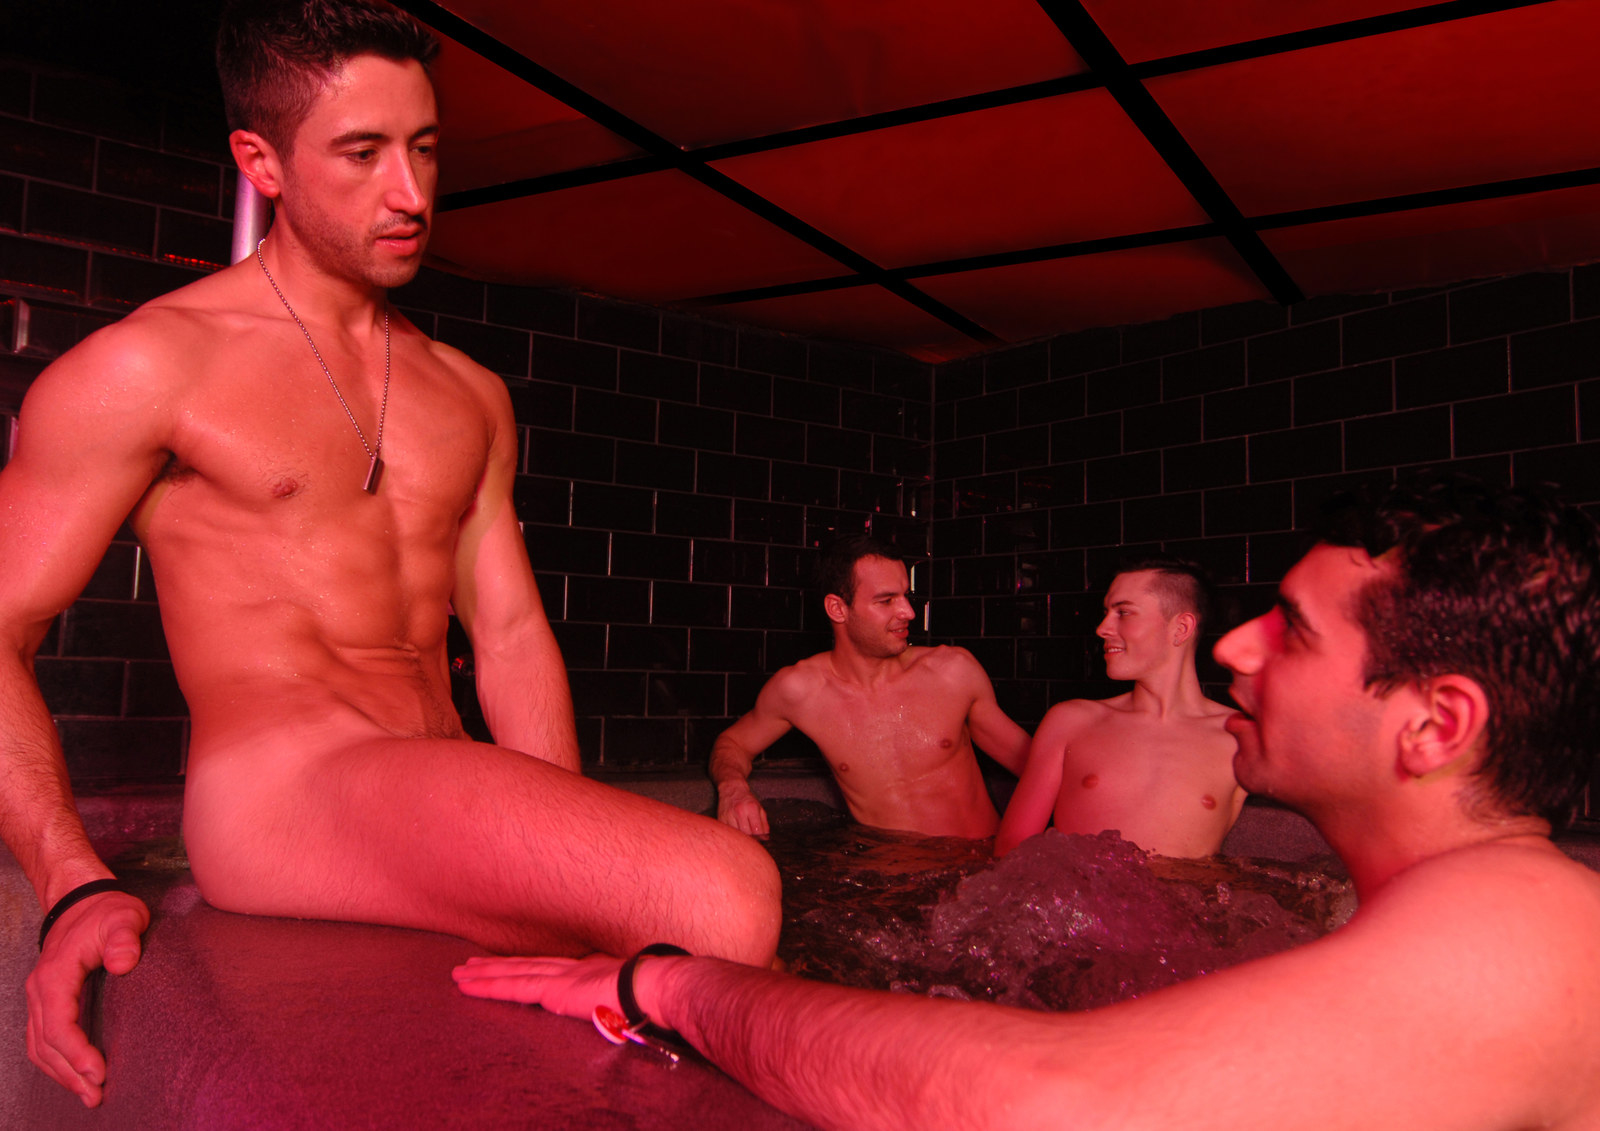 The Housing Crisis Is So Bad That Men Are Having To Sleep In Gay Saunas